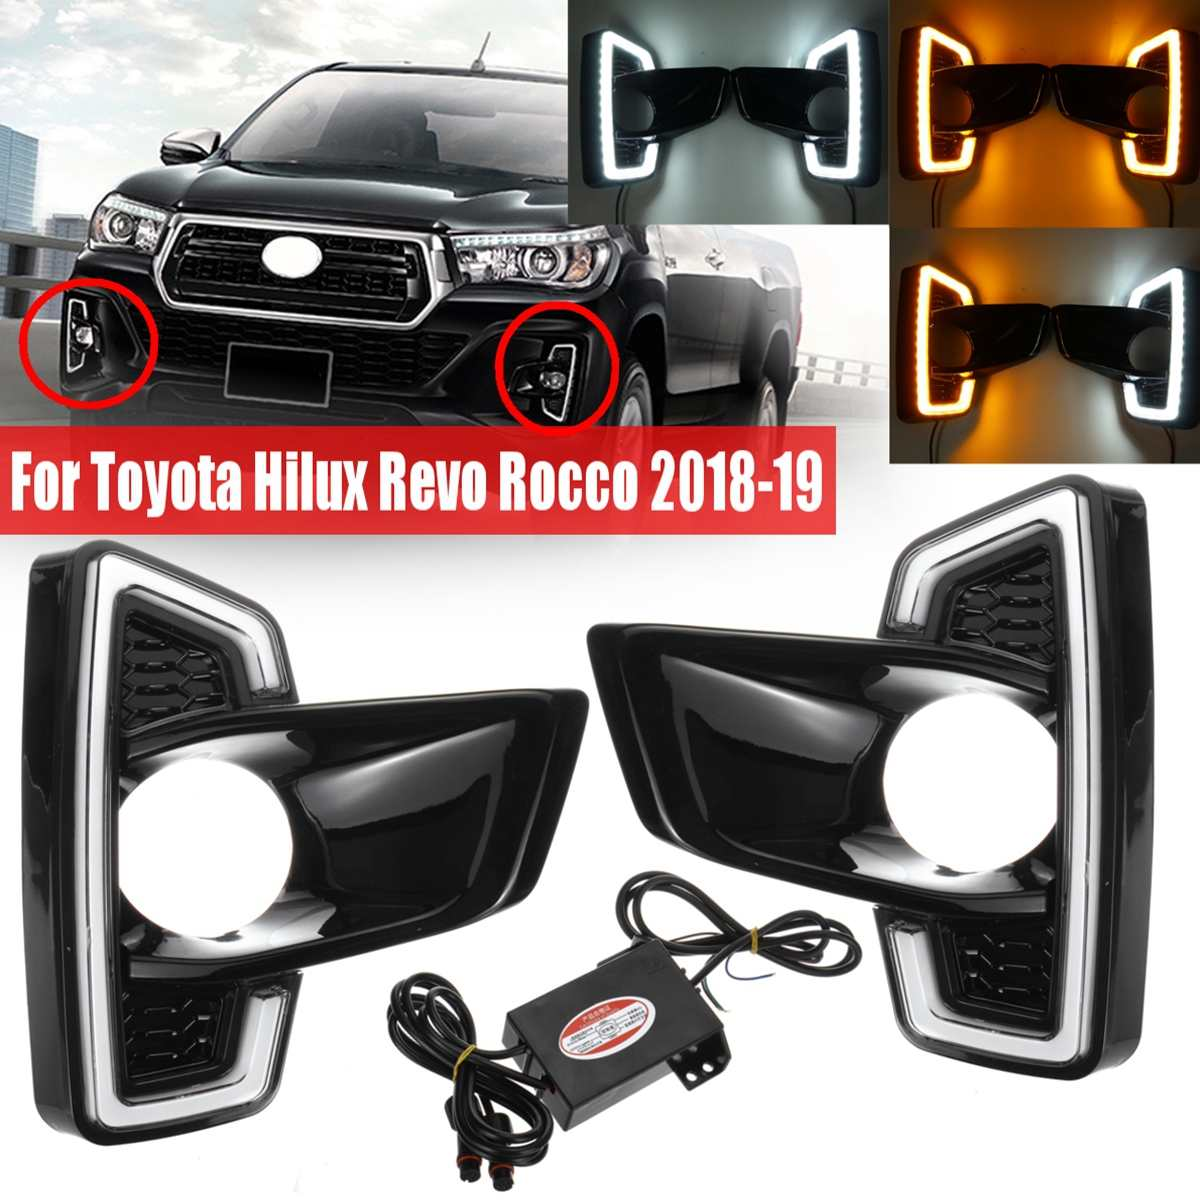 1 Pair Car Front Bumper LED DRL Fog Light Driving Lamp White Yellow Turn Signal For Toyota Hilux Revo Rocco 2018 2019 Styling1 Pair Car Front Bumper LED DRL Fog Light Driving Lamp White Yellow Turn Signal For Toyota Hilux Revo Rocco 2018 2019 Styling